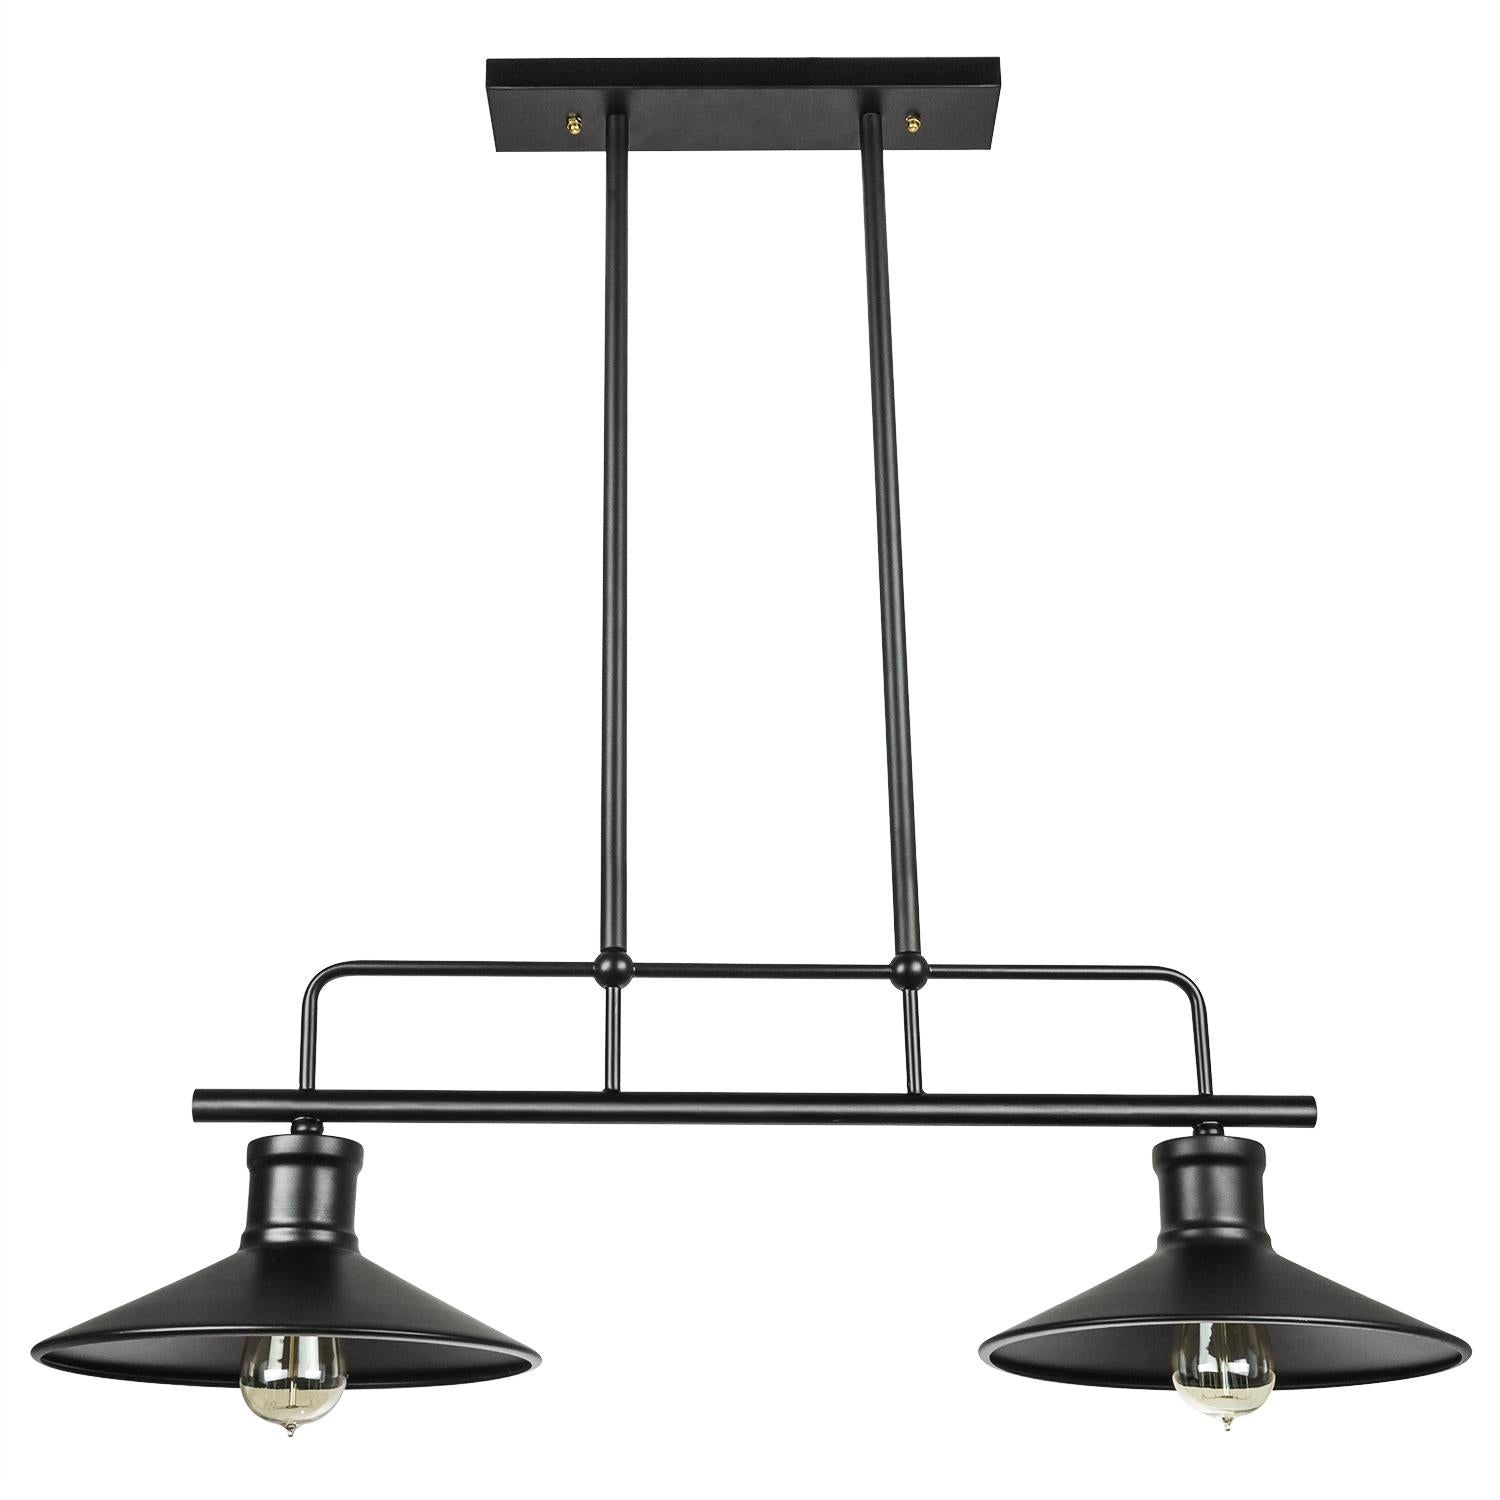 SUNLITE 07068-SU E26 Double Shade Matte Black Pendant Light Fixture